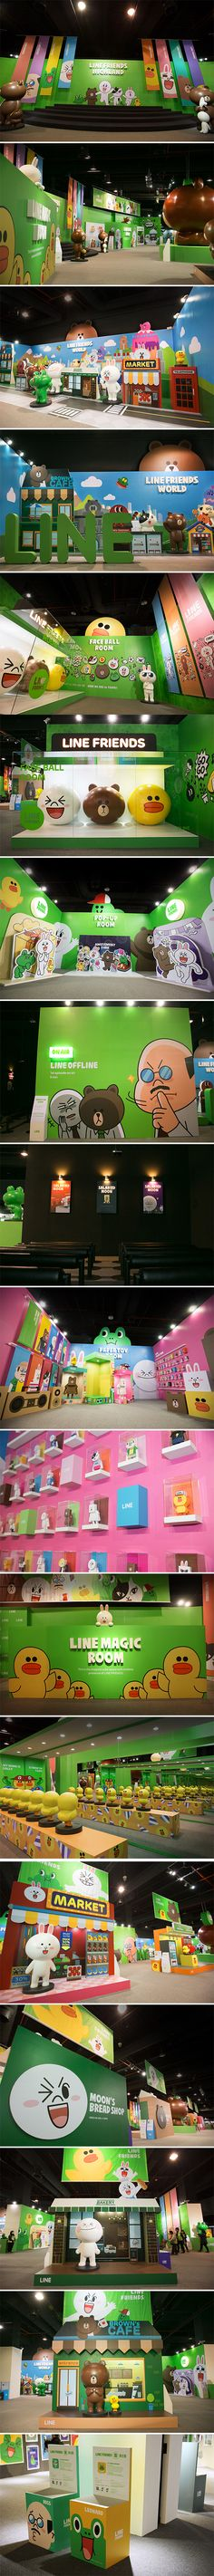 LINE THEMEPARK on Behance